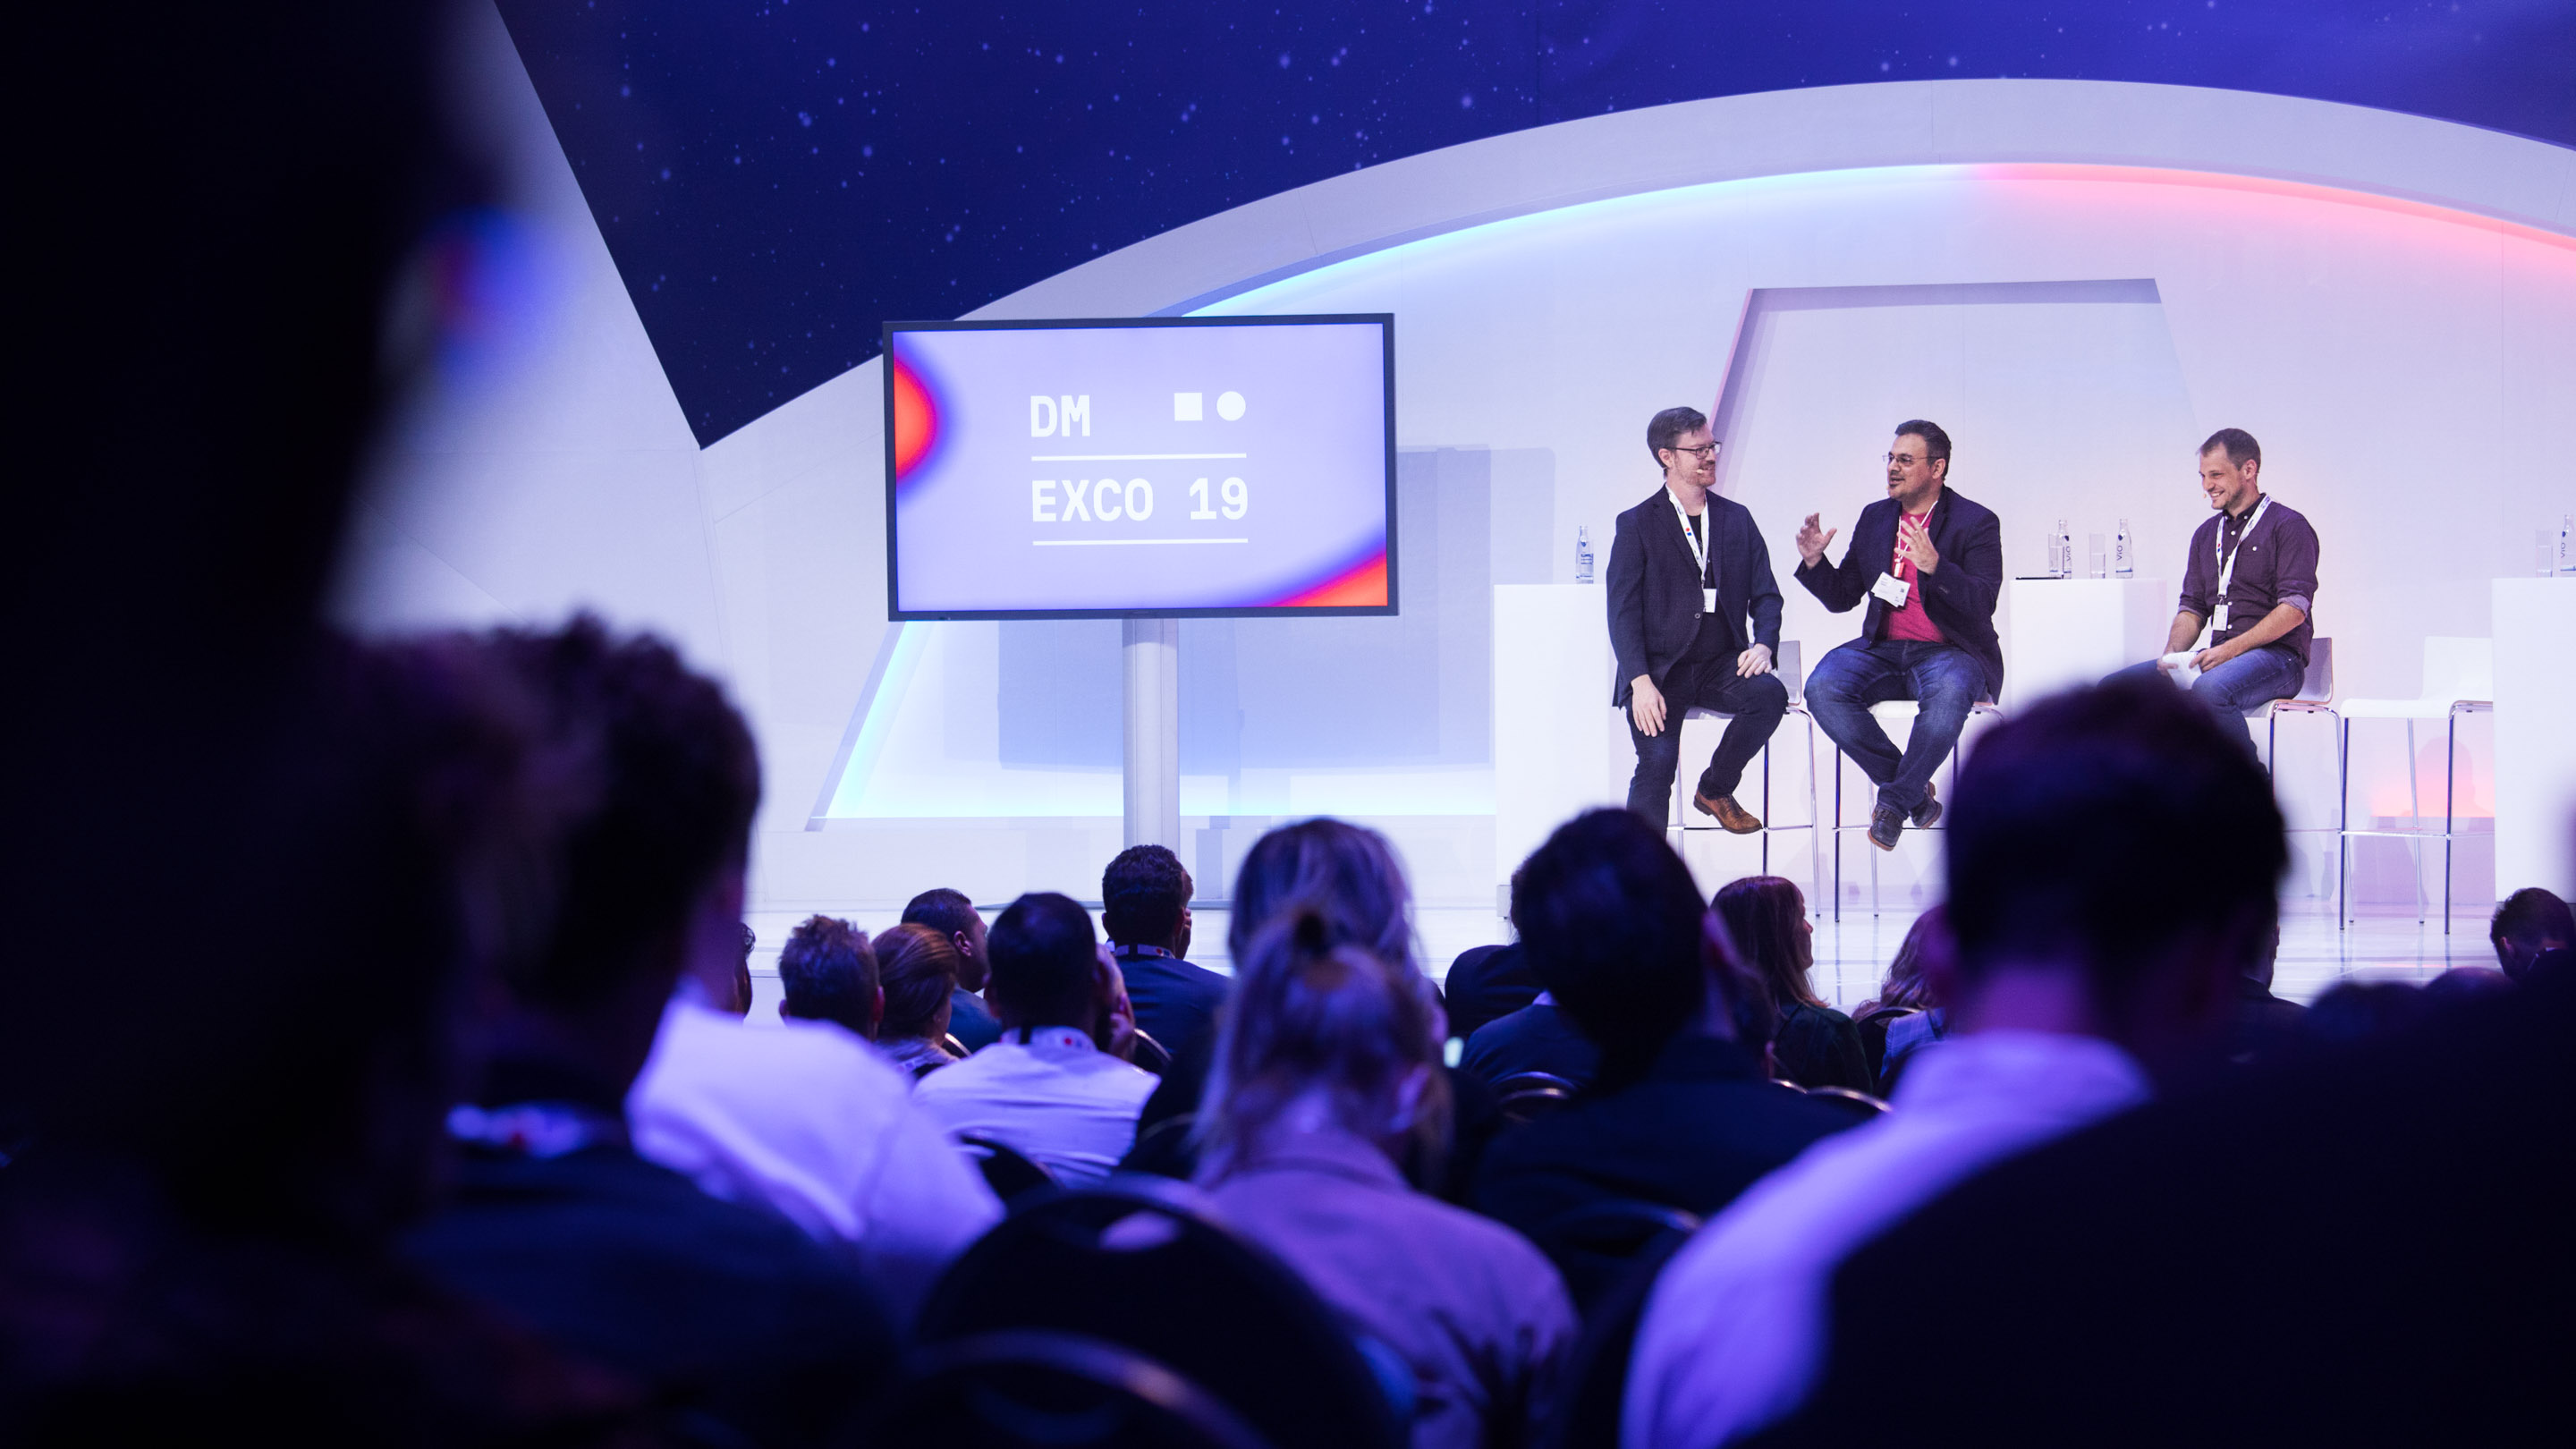 Experience Stage: How real is Blockchain? Speaker: Kambiz Djafari, Wolfgang Kerler, LuRae Lumpkin, Nathan Williams, DMEXCO 2019